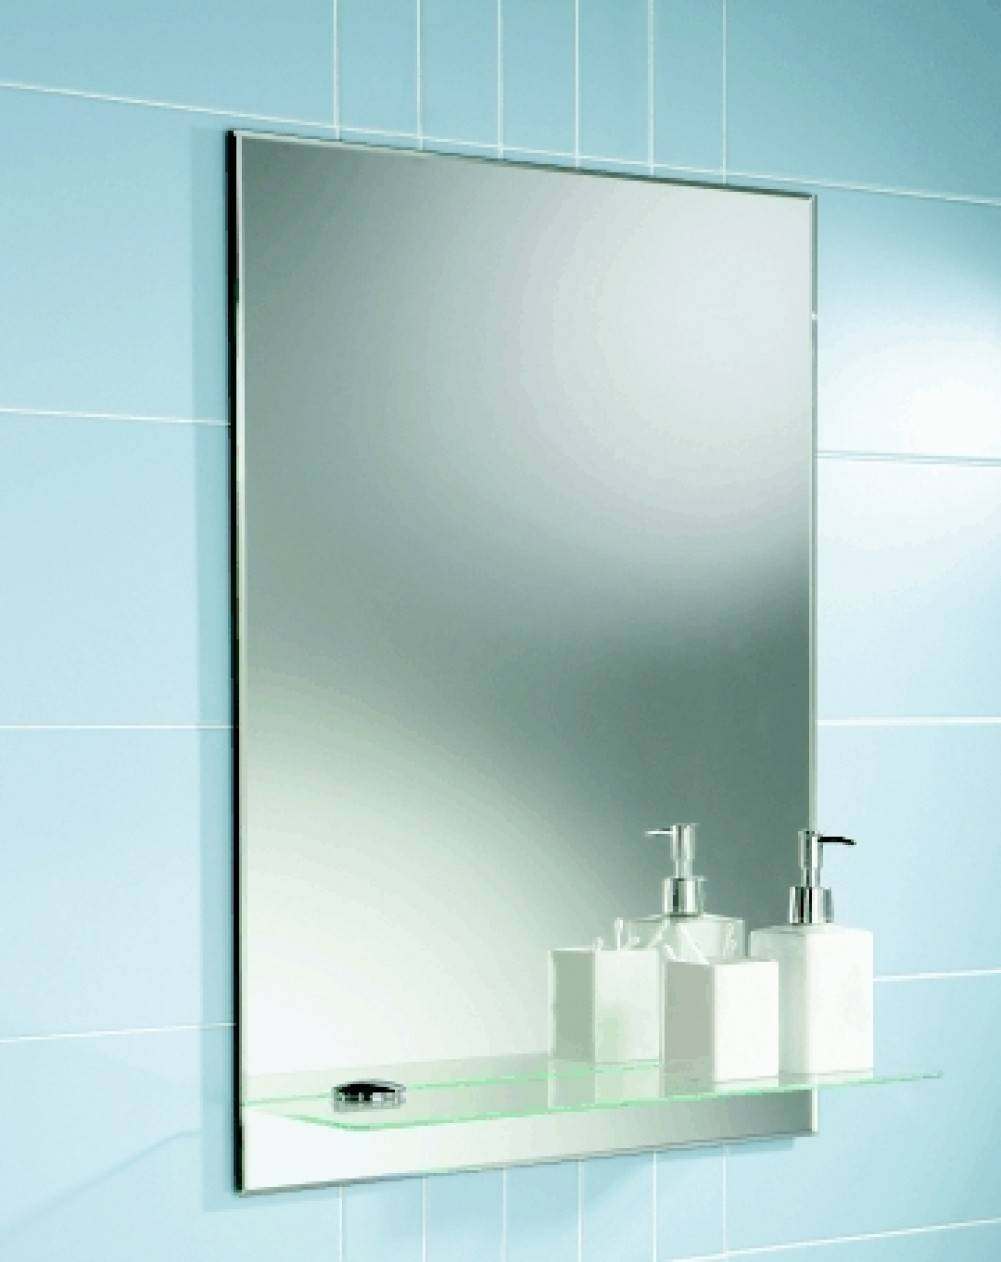 Blue Ceramic Wall Tile Mirror Without Frame Glass Shelving Bottle with regard to Wall Mirrors Without Frame (Image 7 of 15)